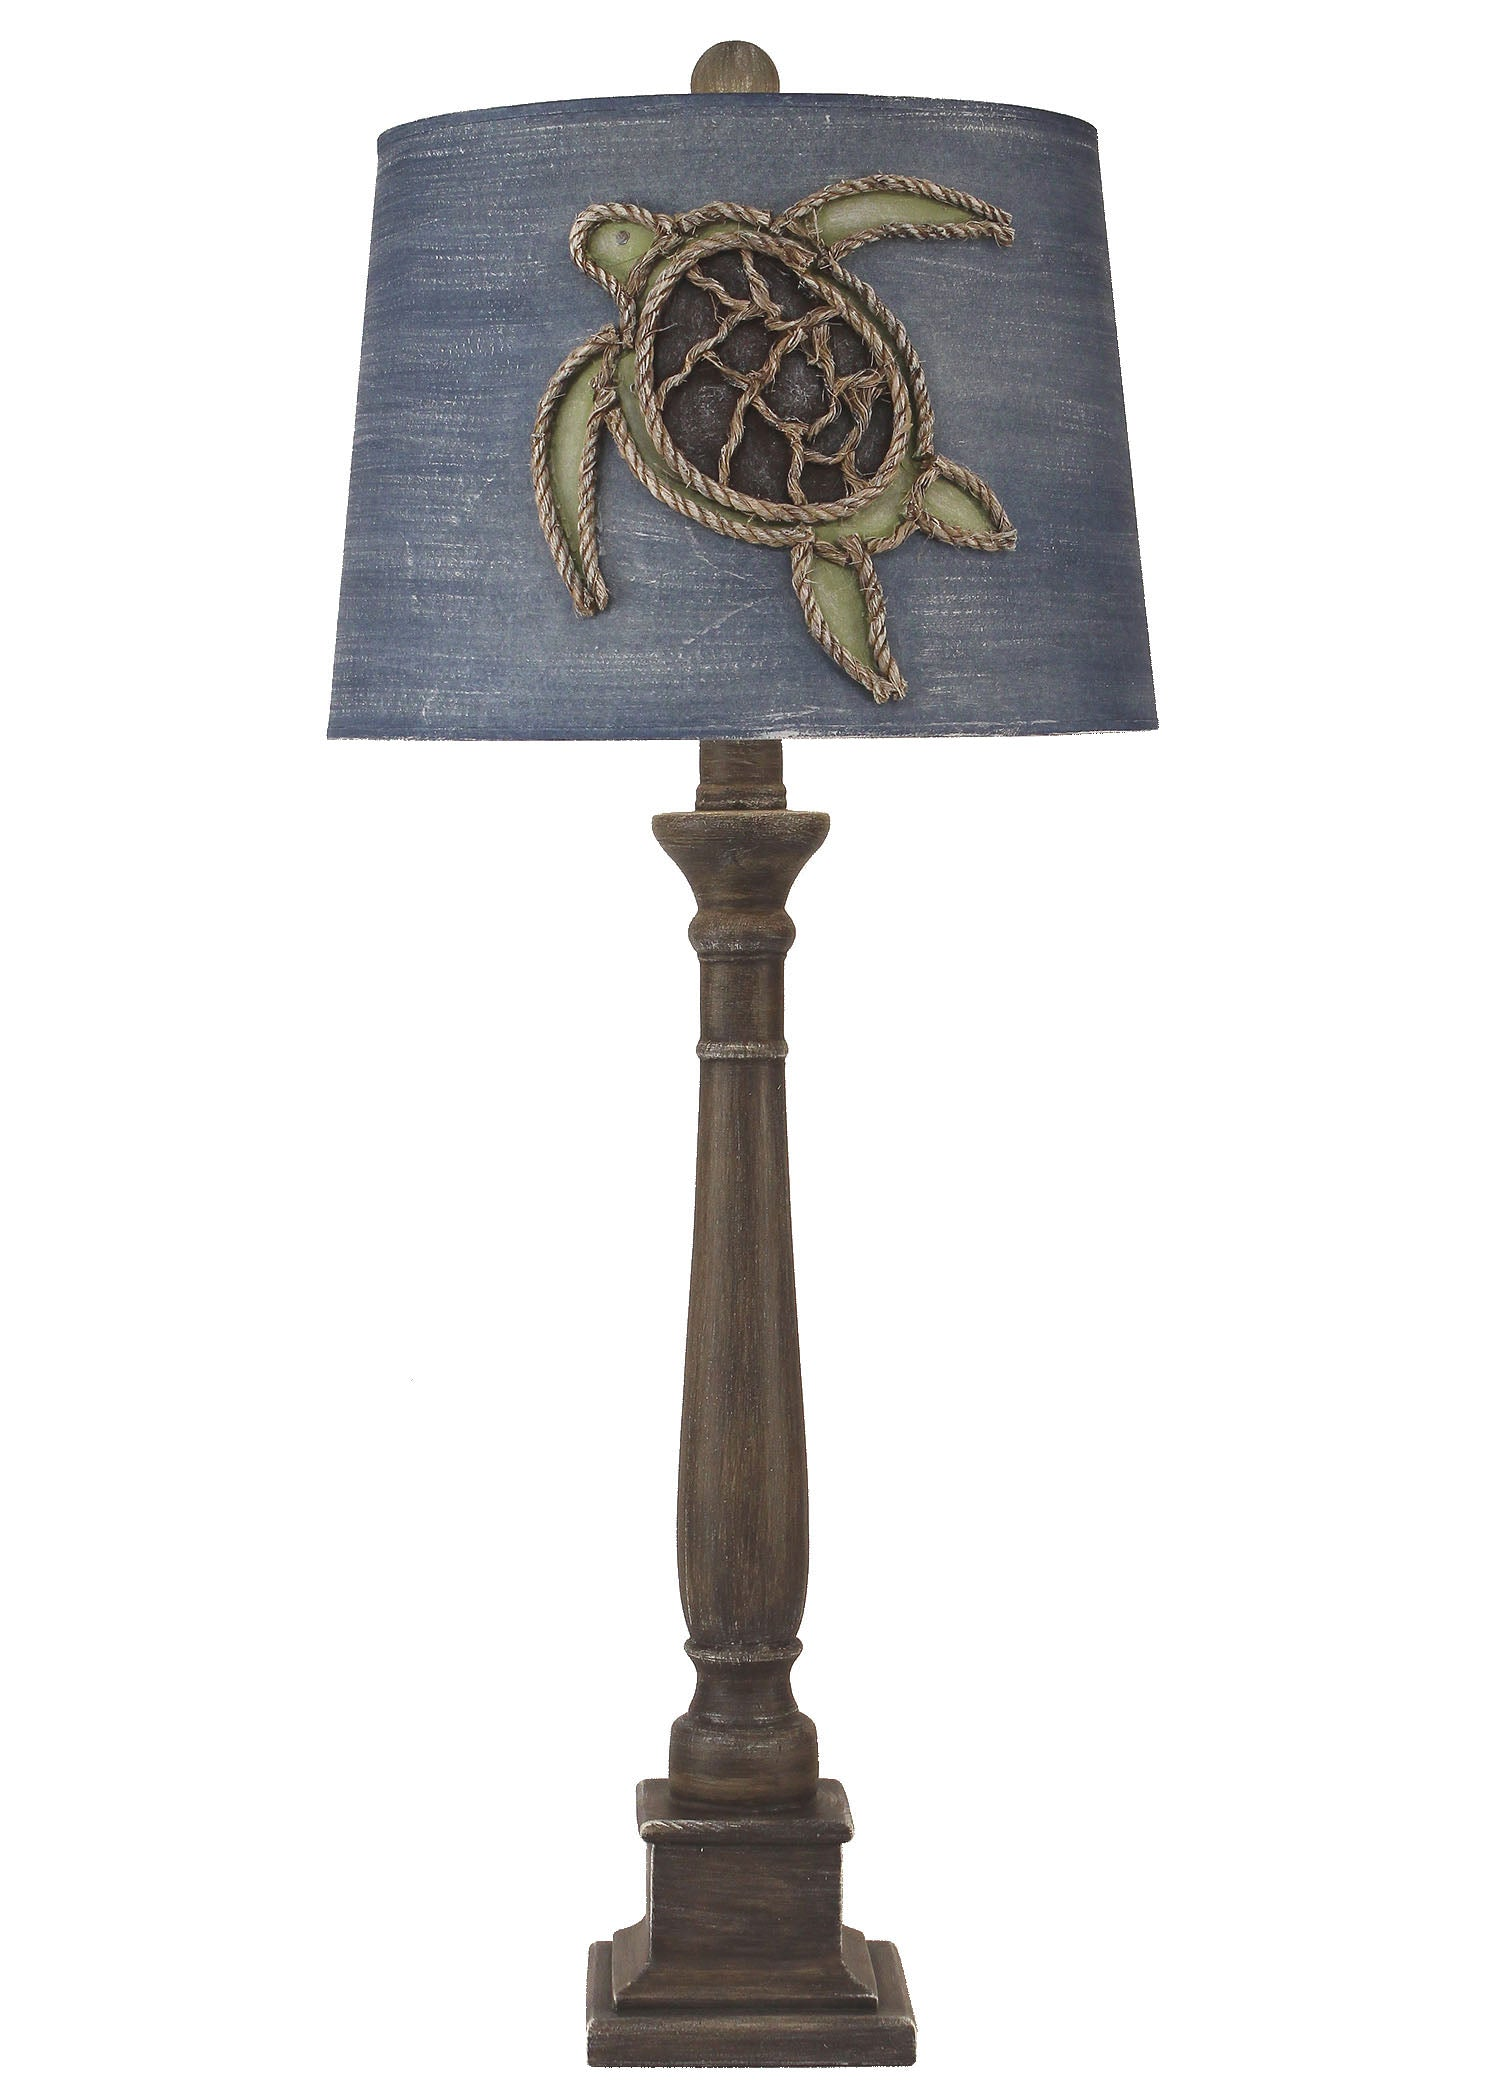 Greywood Candlestick Table Lamp w/ Turtle Shade - Coast Lamp Shop